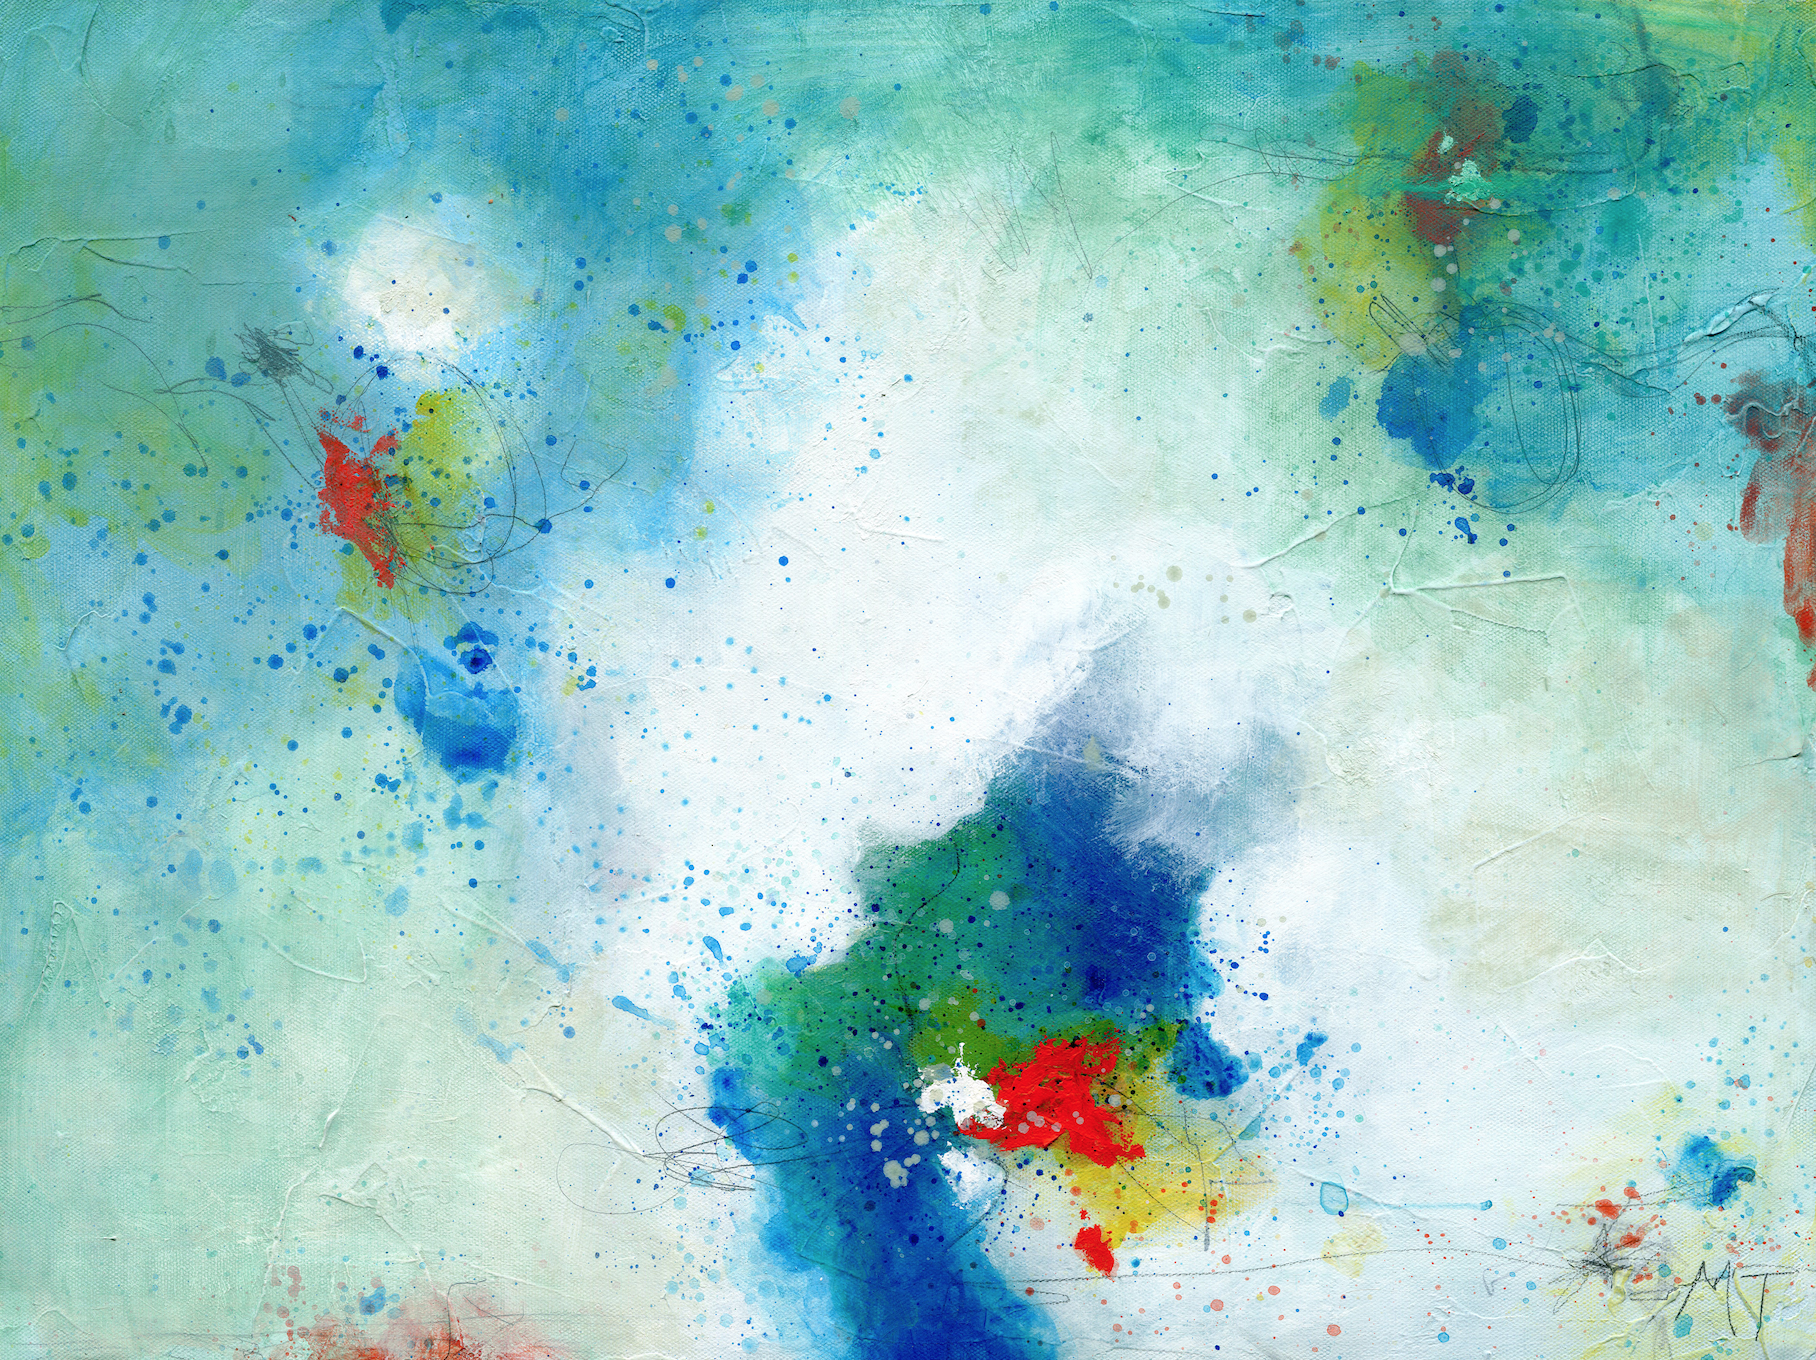 abstract-life-universe-painting-mandy-thompson-color.jpg